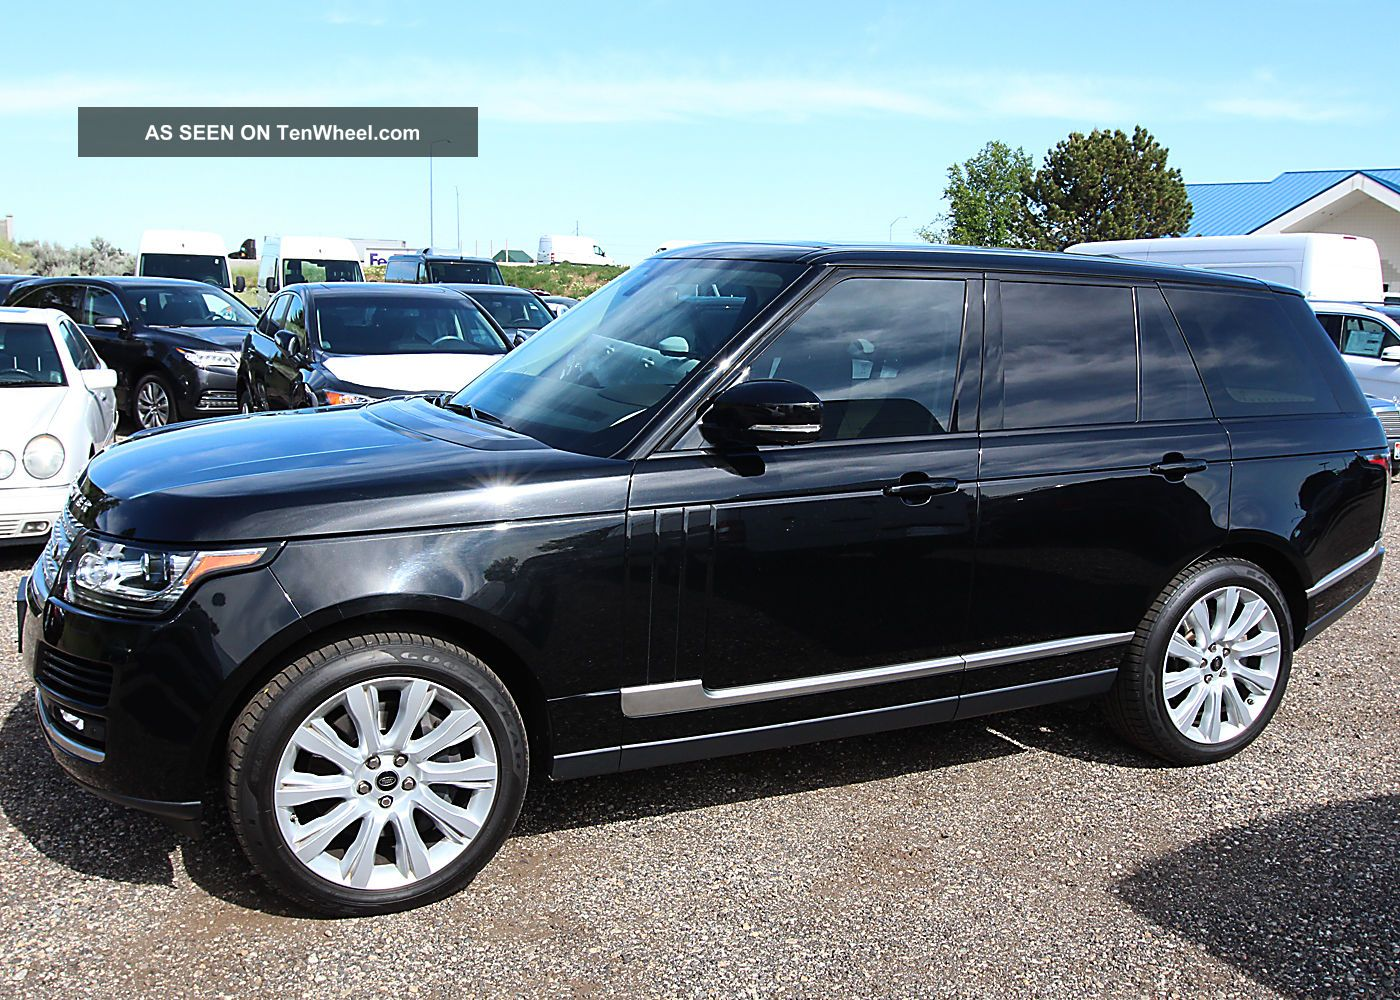 Immaculate 2013 Land Rover Range Rover Supercharged Suv 2012 2014 Santori Black Range Rover photo